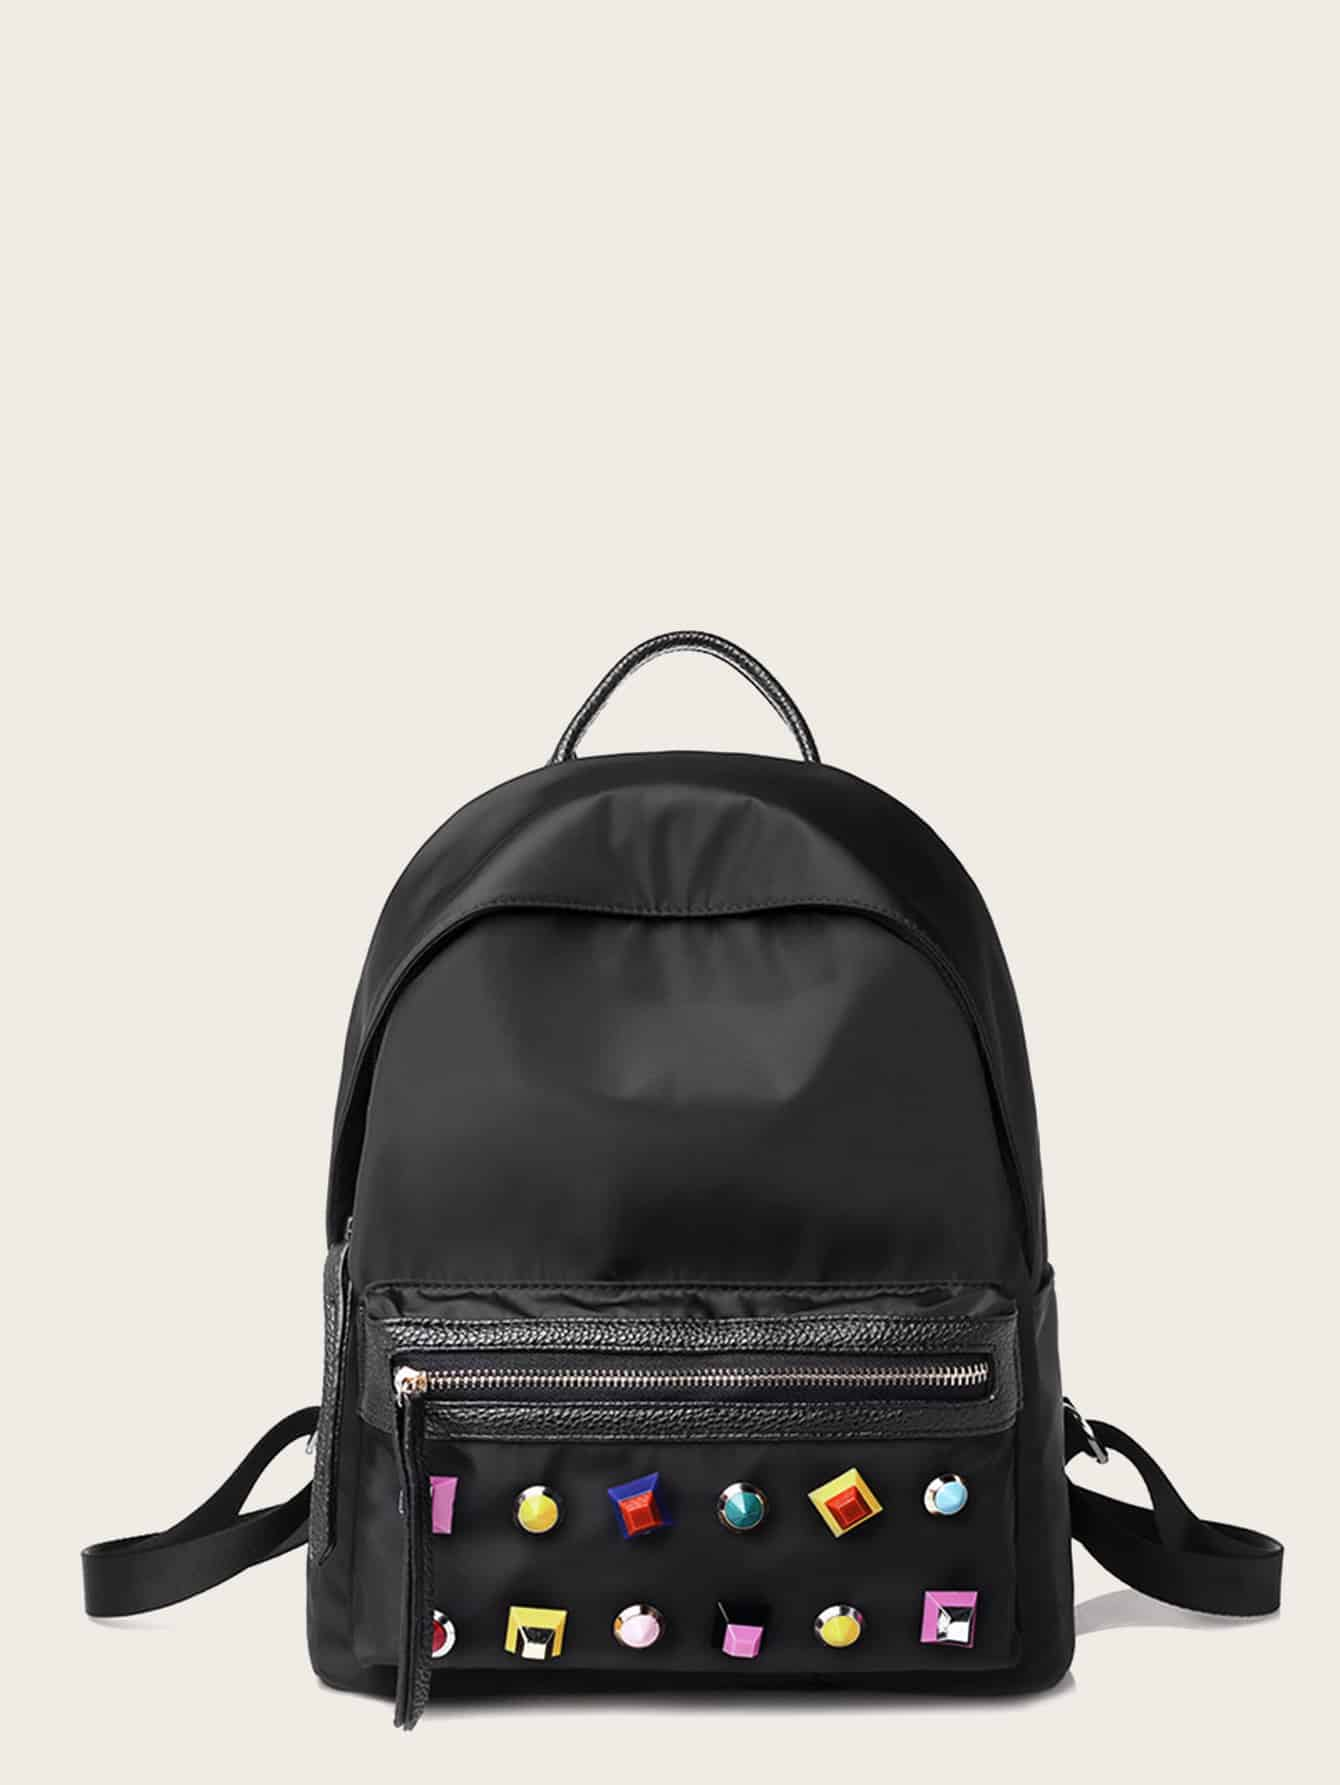 Studded Decor Nylon Backpack null